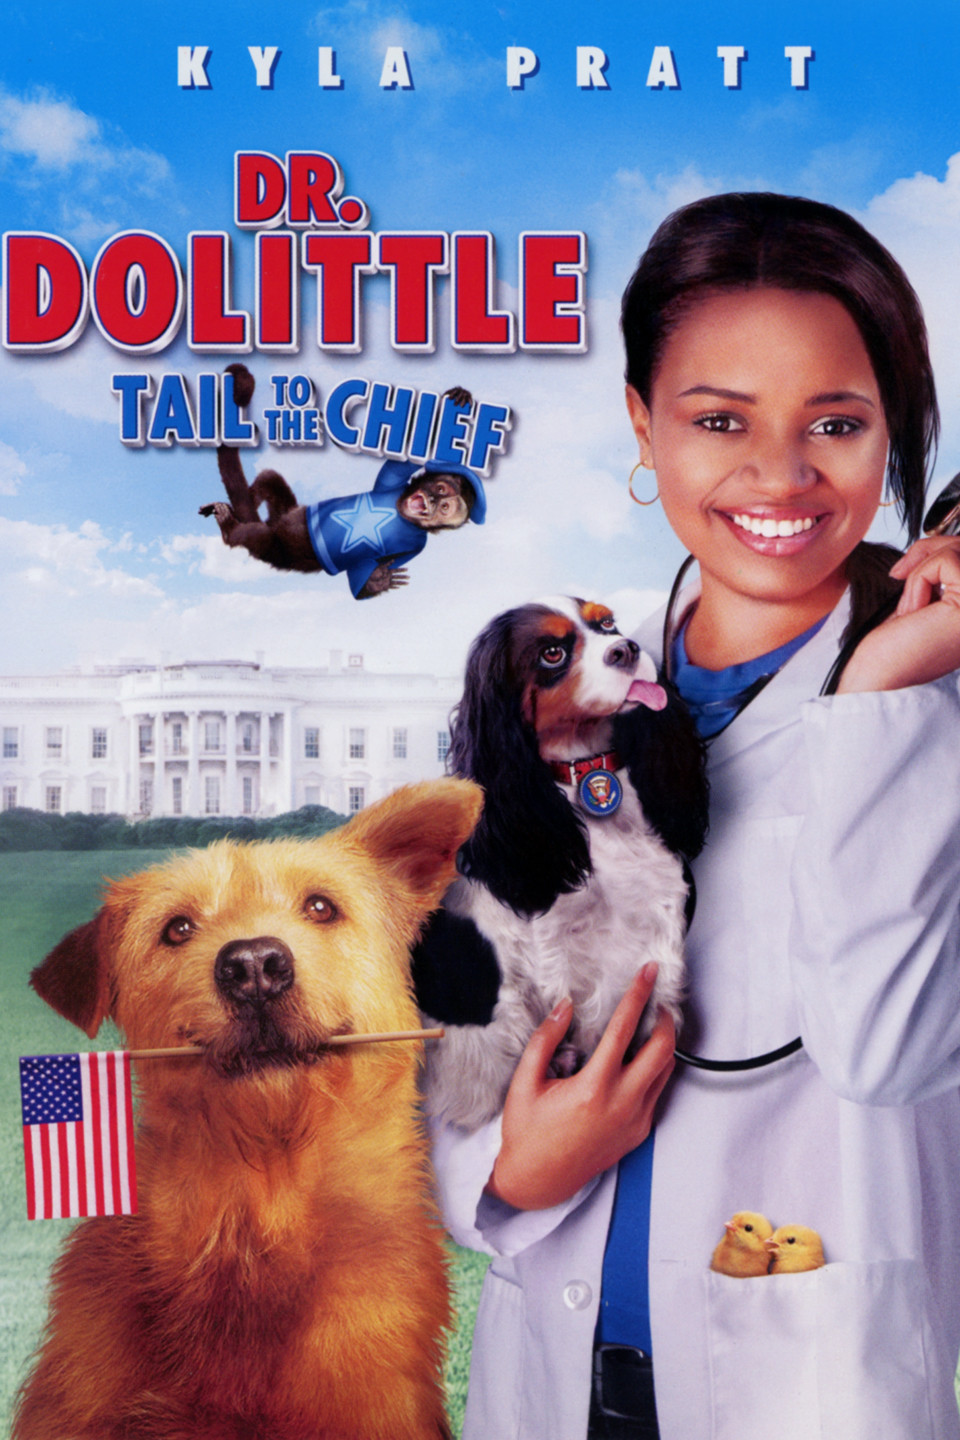 Photo credit: Dr. Dolittle: Tail to the Chief